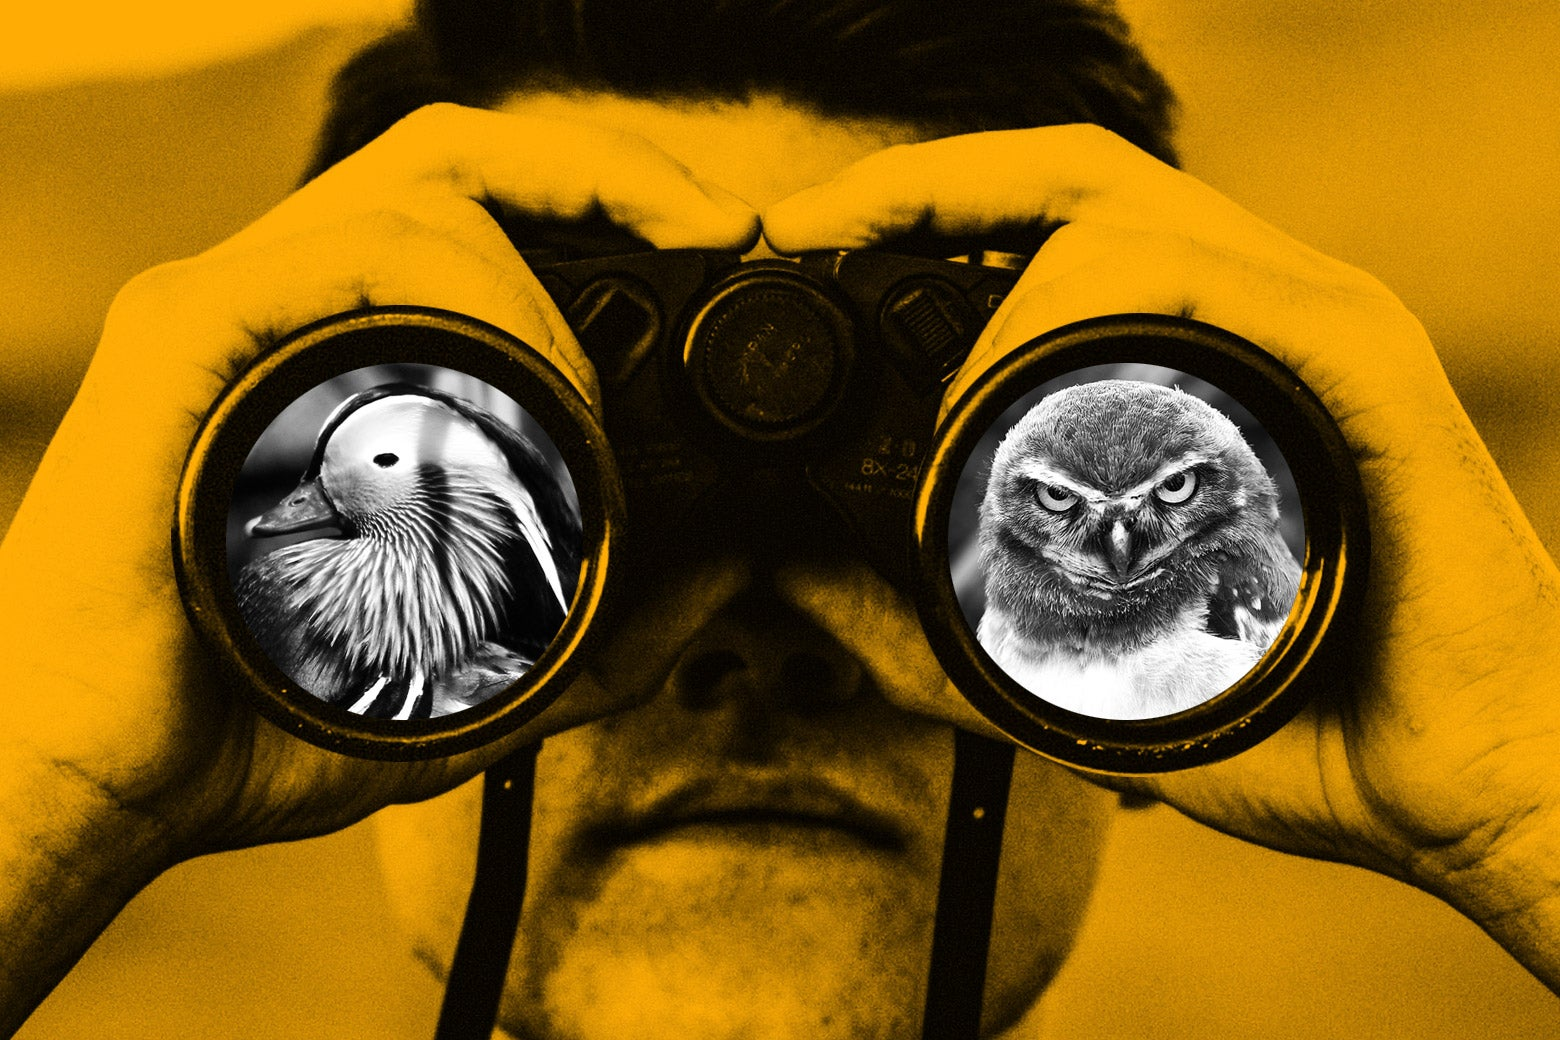 Photo illustration of owls as seen through binoculars.